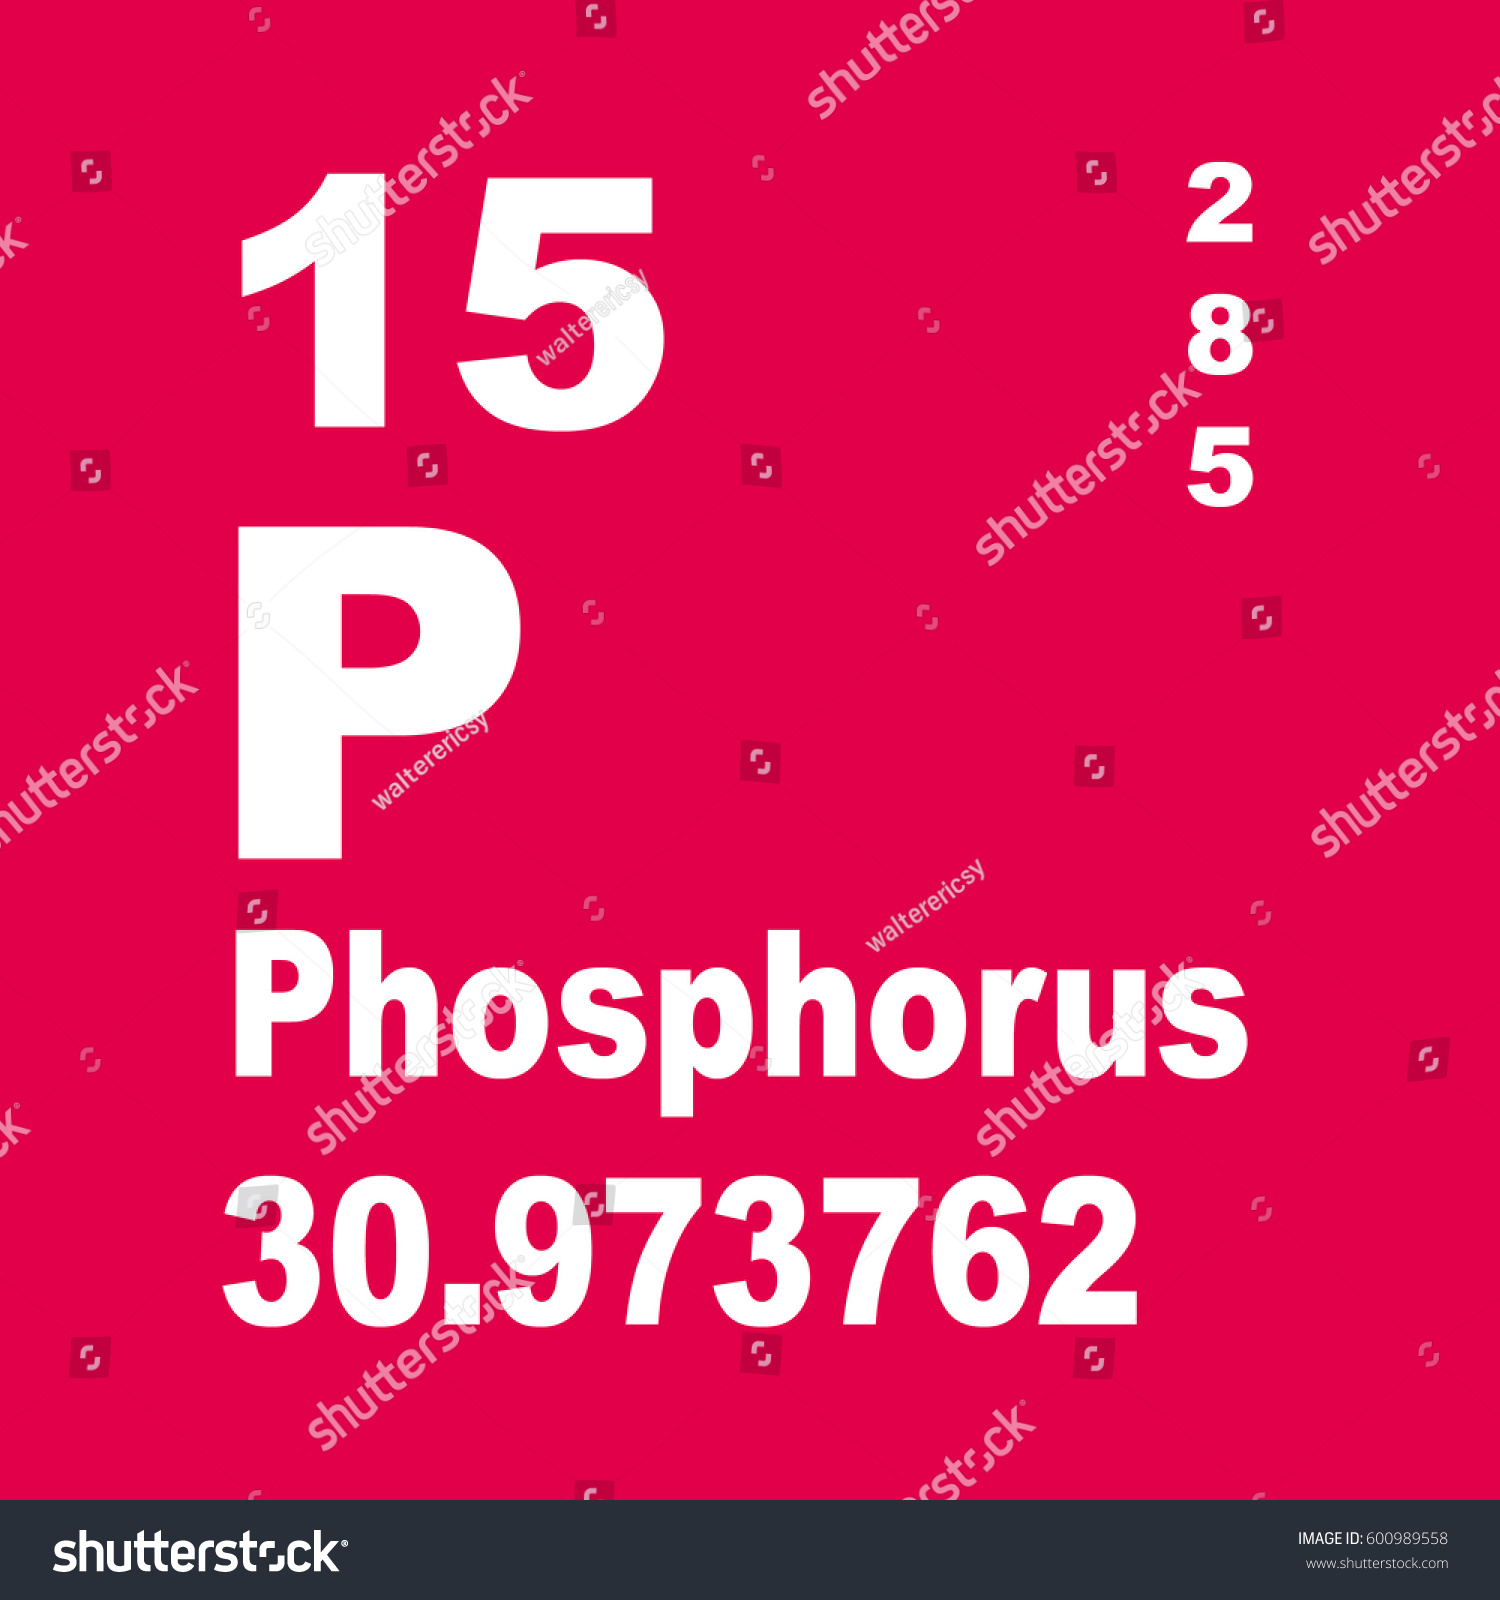 Phosphorus on periodic table image collections periodic table images phosphorus on the periodic table gallery periodic table images phosphorus on the periodic table aviongoldcorp phosphorus gamestrikefo Gallery